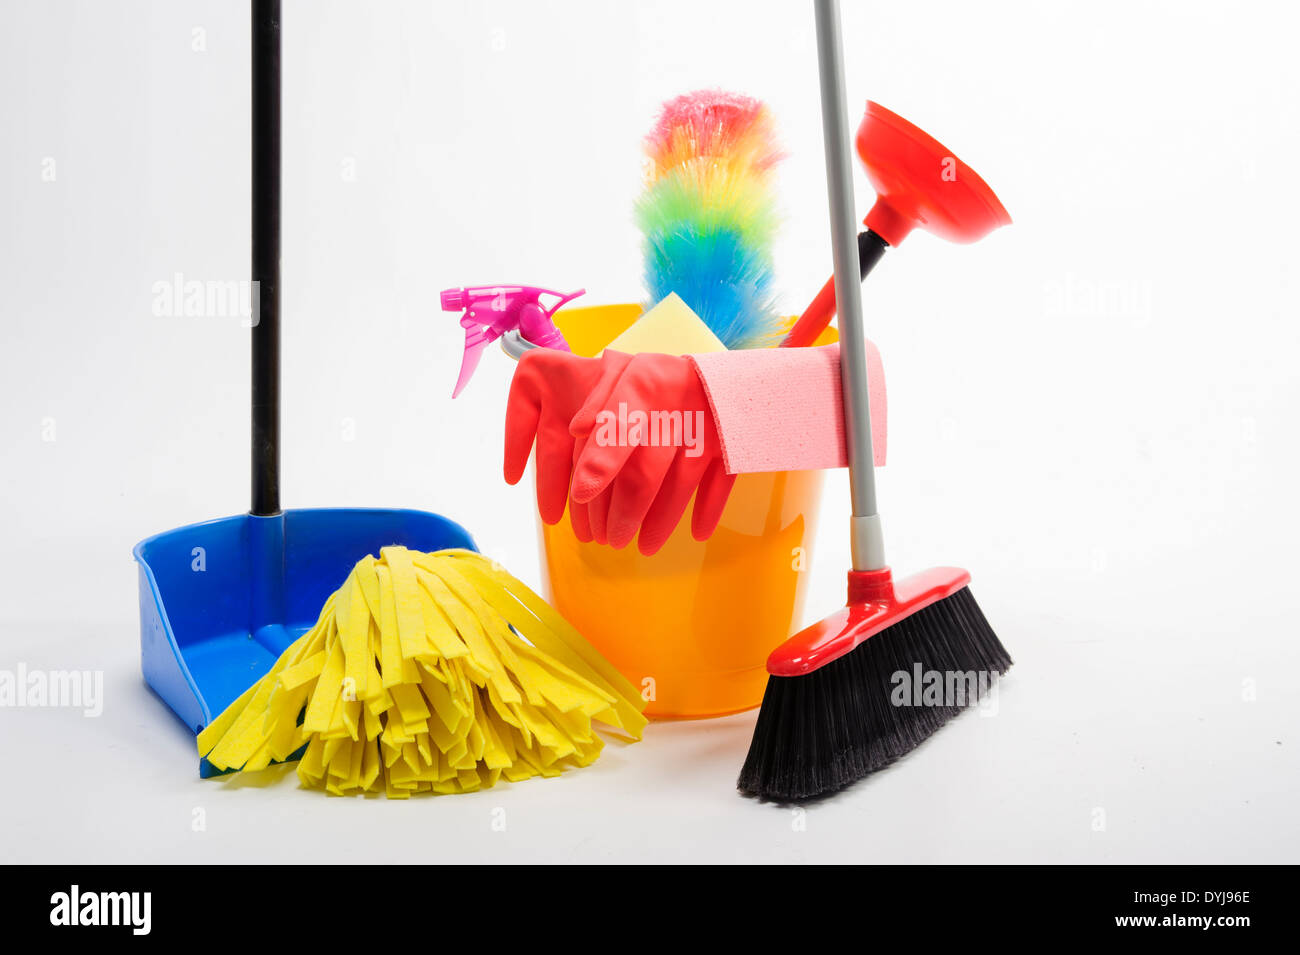 Clean tools - Stock Image